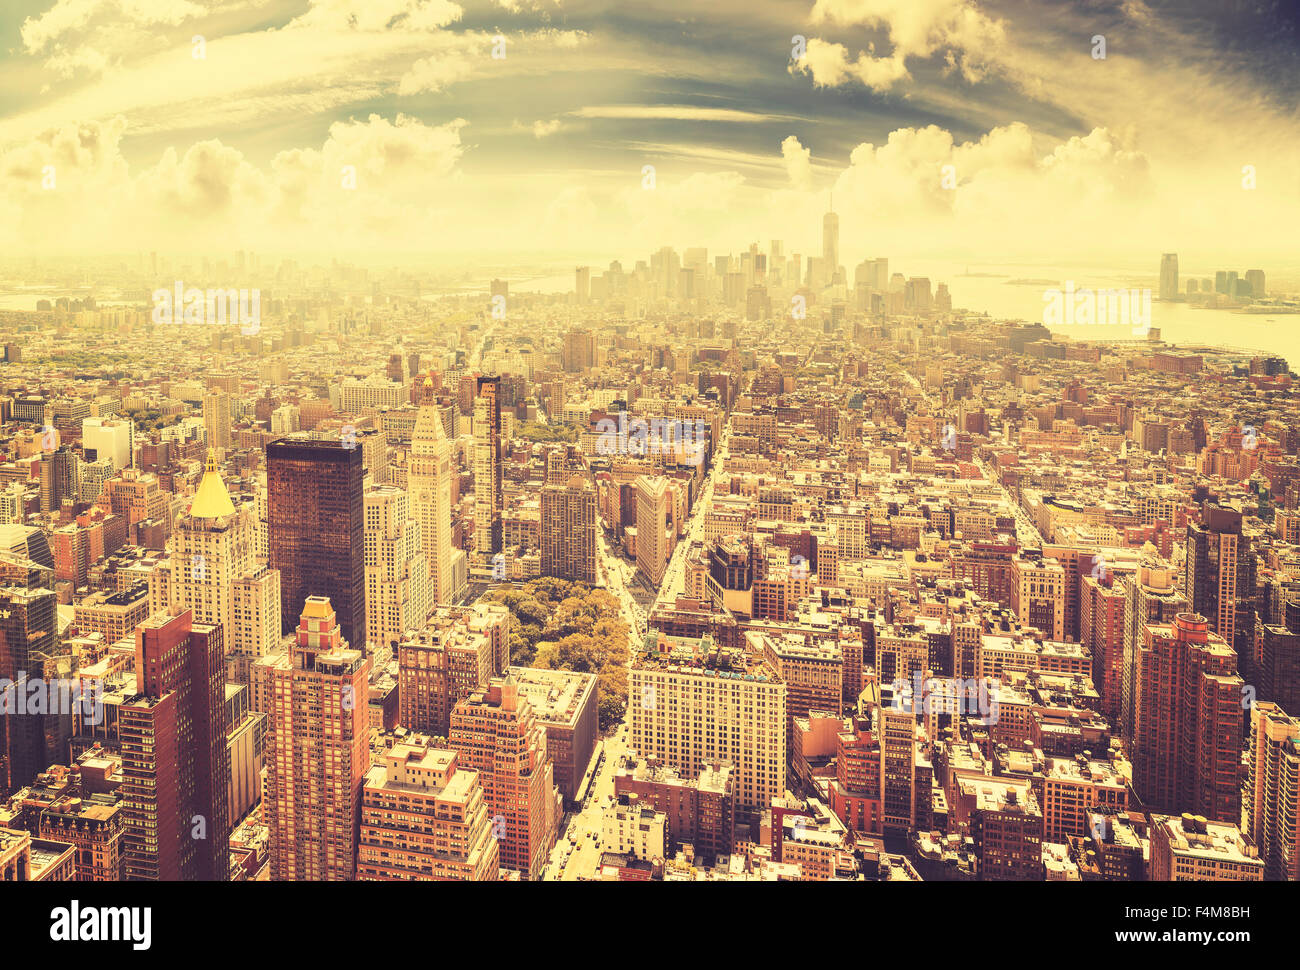 Vintage toned Manhattan skyline, New York City, USA. - Stock Image